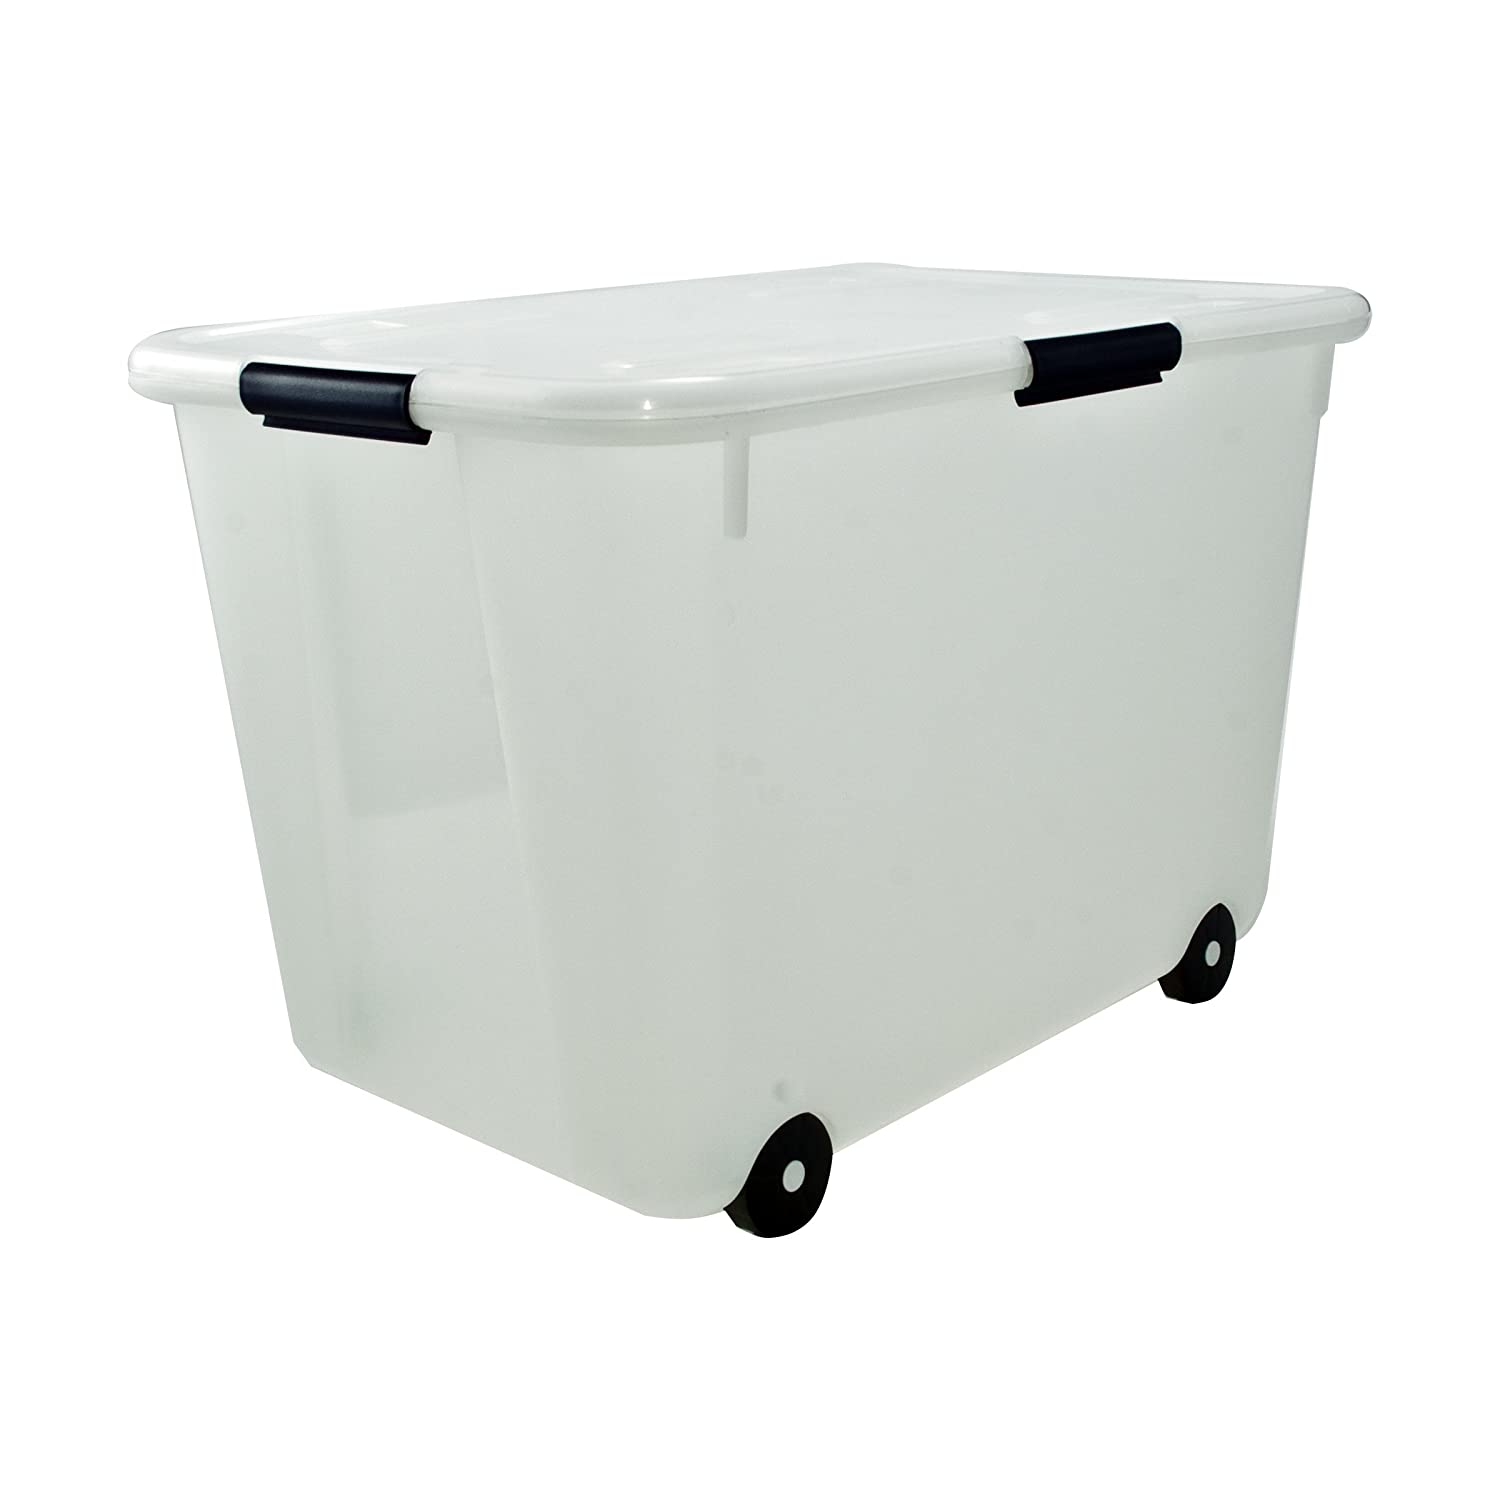 Advantus Rolling Storage Box with Snap Lid, 15-Gallon Size, Clear, AVT34009